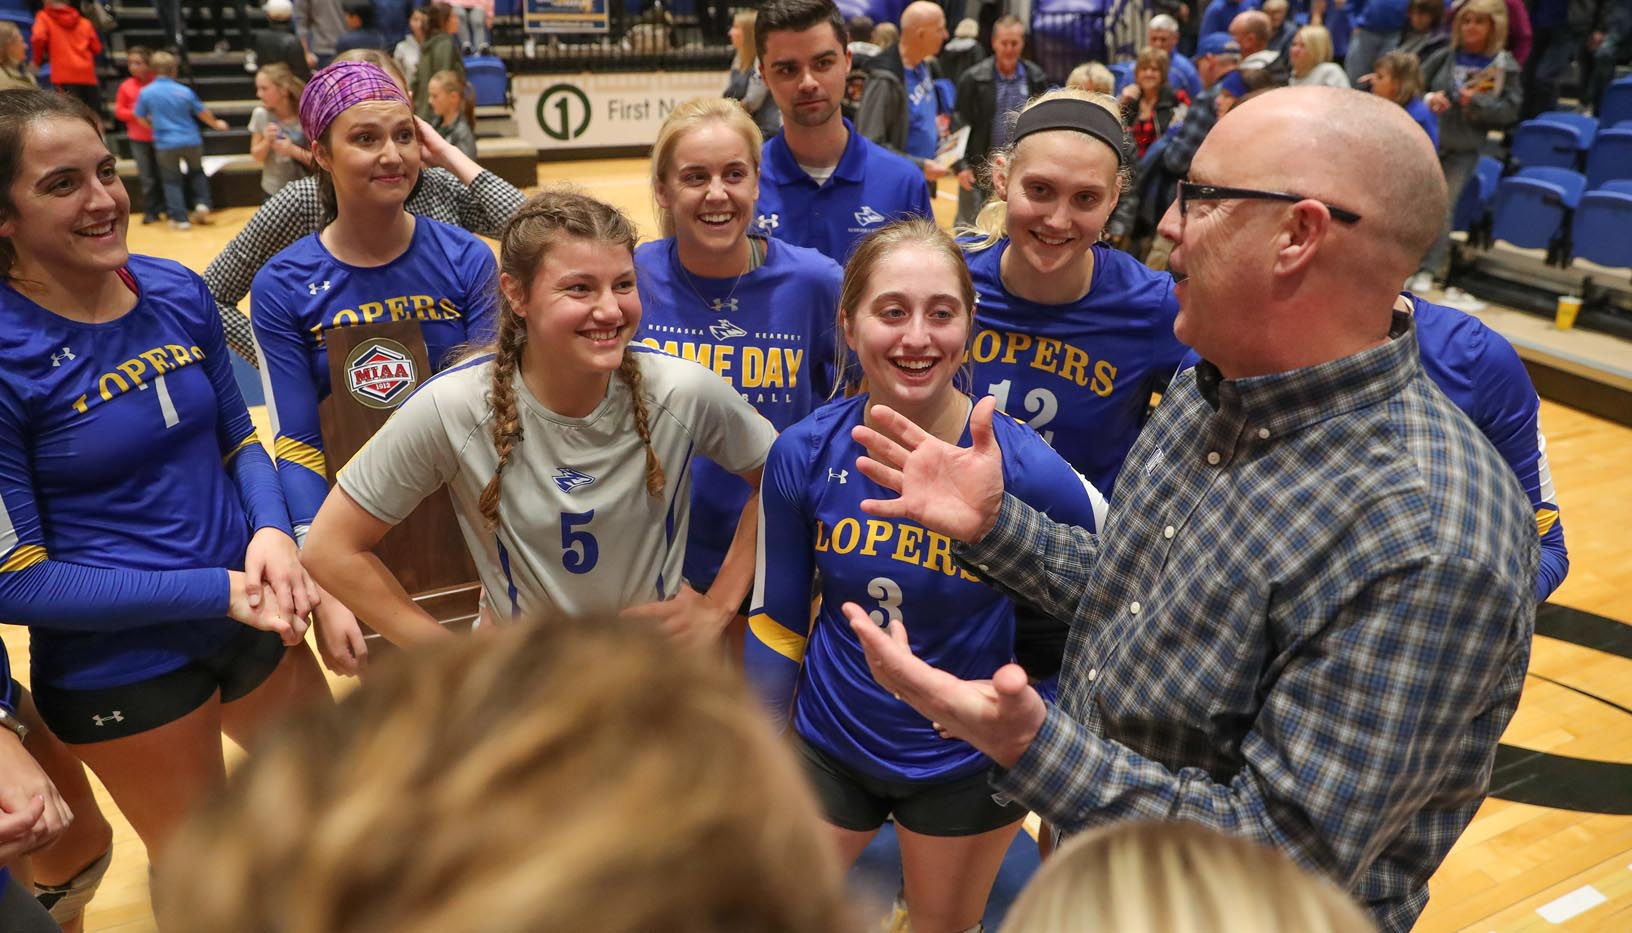 Inside UNK's Health and Sports Center, Rick Squiers focuses on his role as head coach of the Loper volleyball team, which includes his daughters Anna, left, and Maddie, back middle. Away from campus, he switches to dad mode. (Photo by Corbey R. Dorsey, UNK Communications)